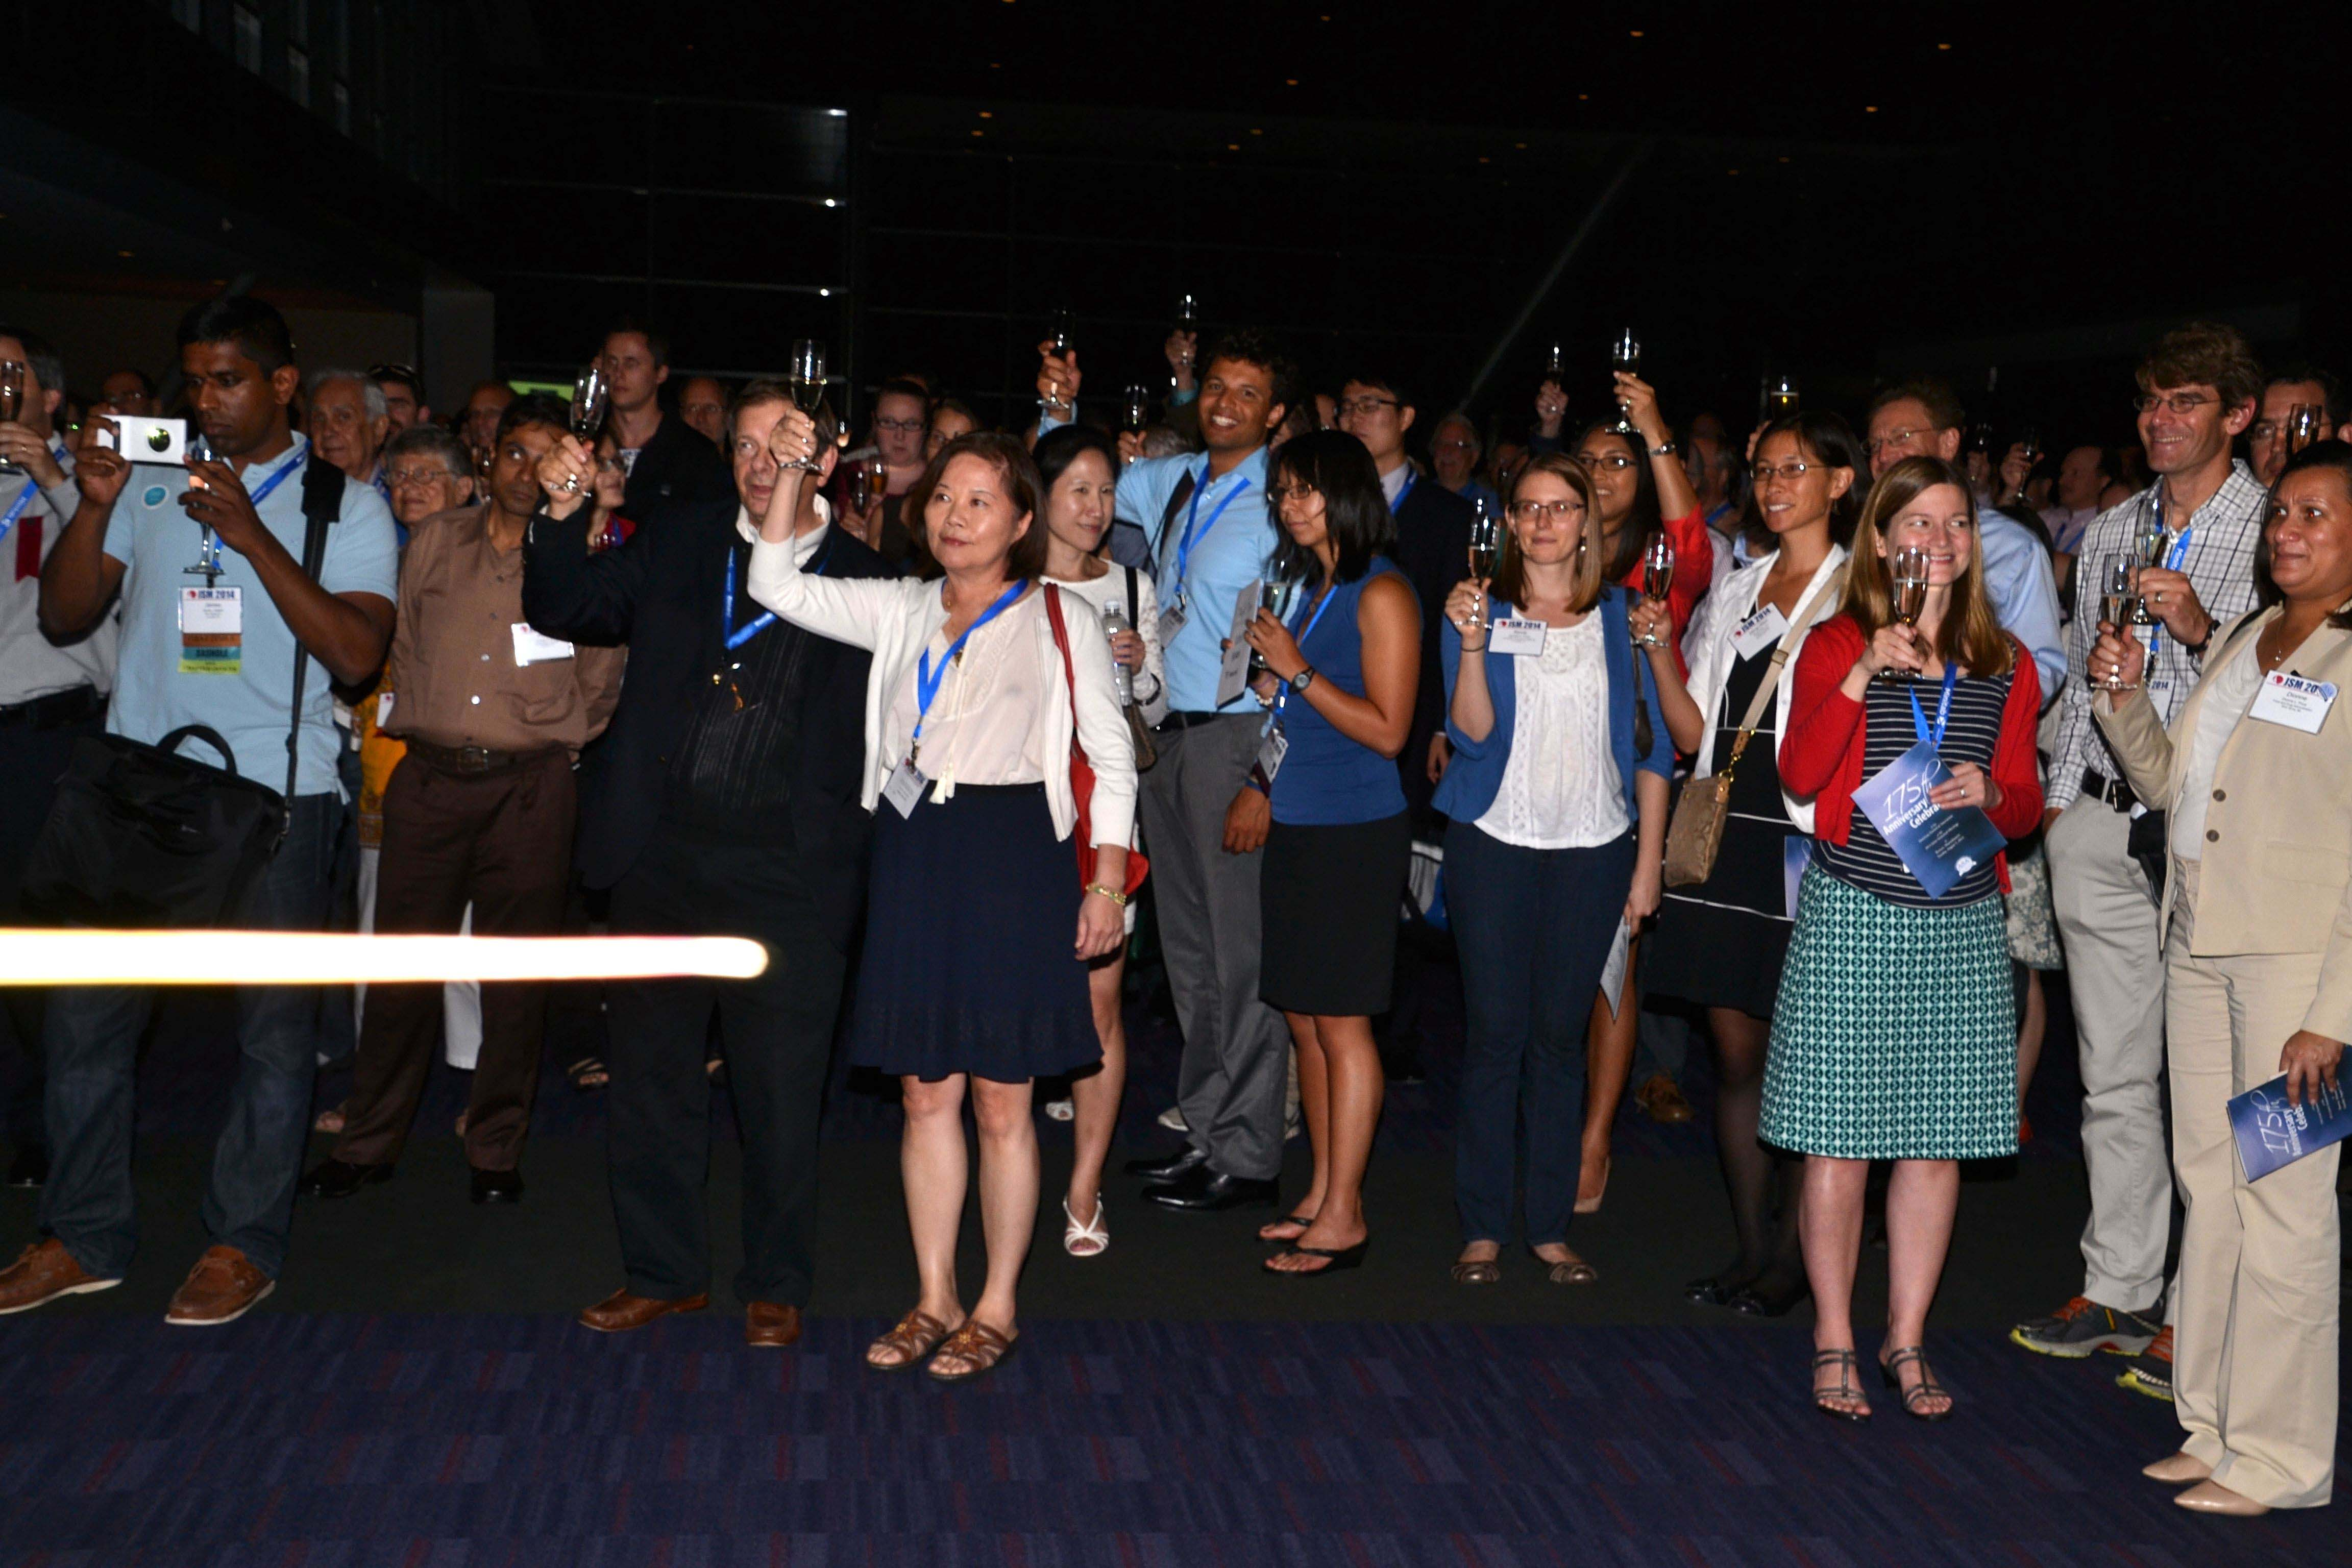 Attendees raise their glasses in a toast to the ASA's 175 years during the anniversary celebration